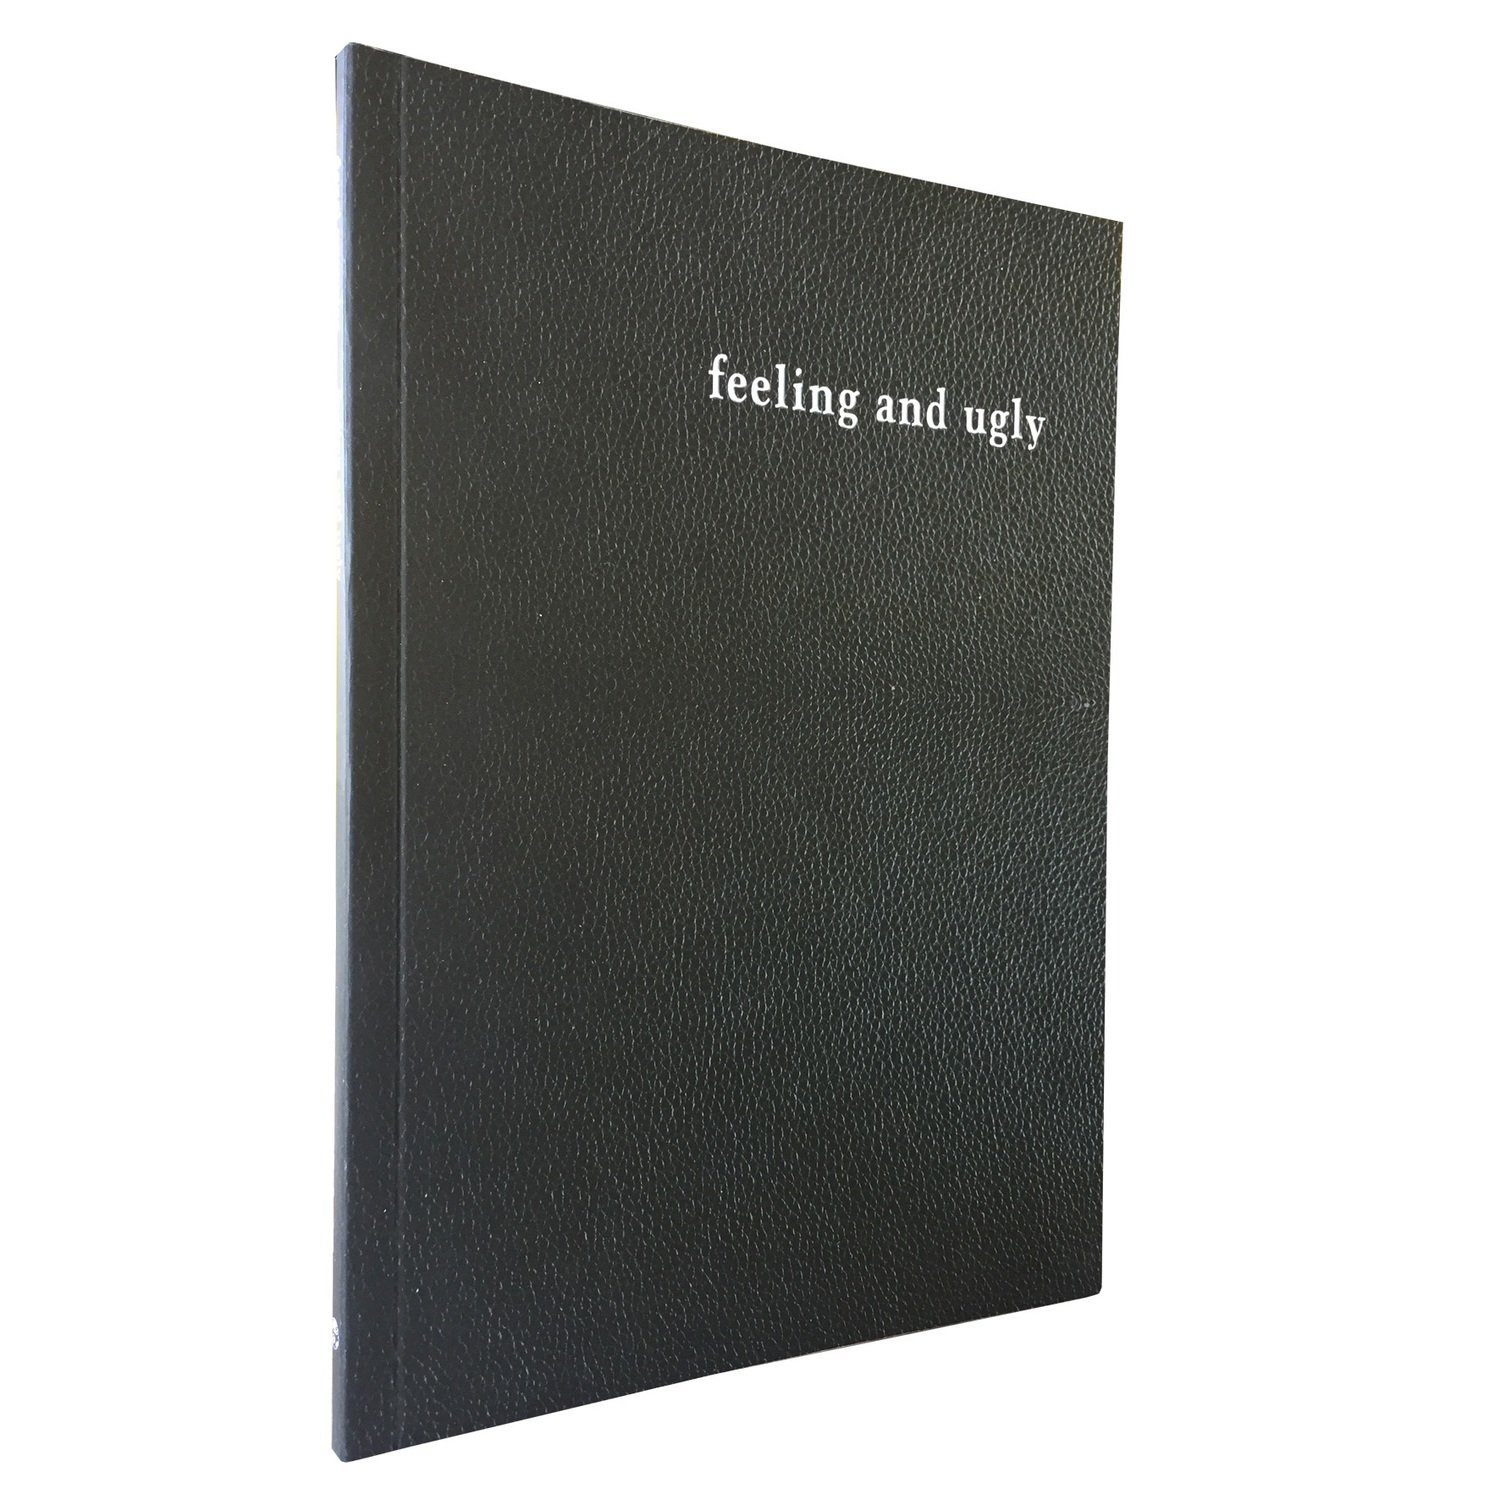 Feeling and Ugly by Danai Mupotsa (Impepho Press 2018)